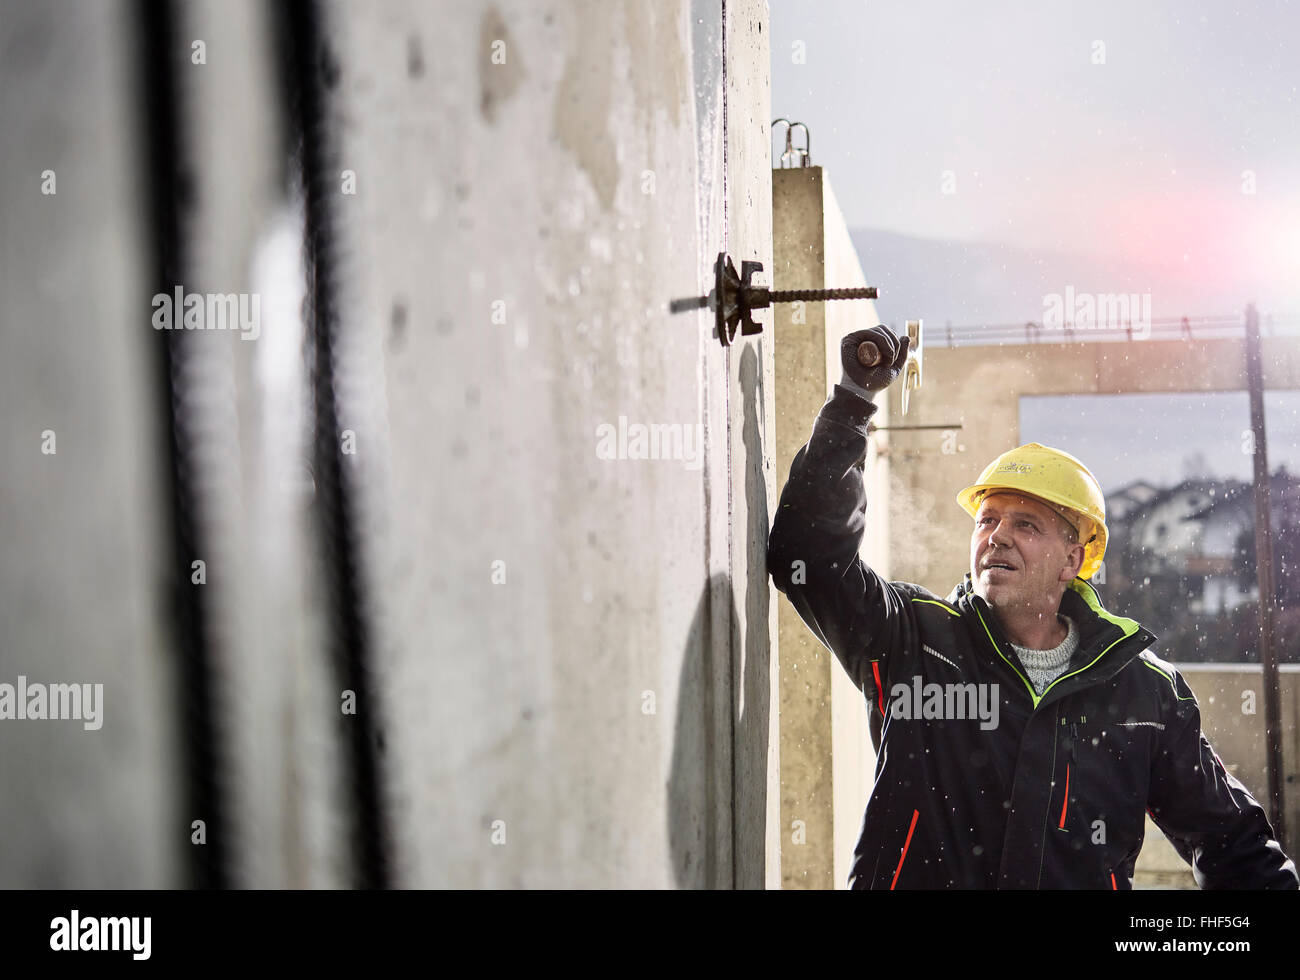 Construction worker at building site, construction, removal of formwork, Innsbruck Land, Tyrol, Austria Stock Photo